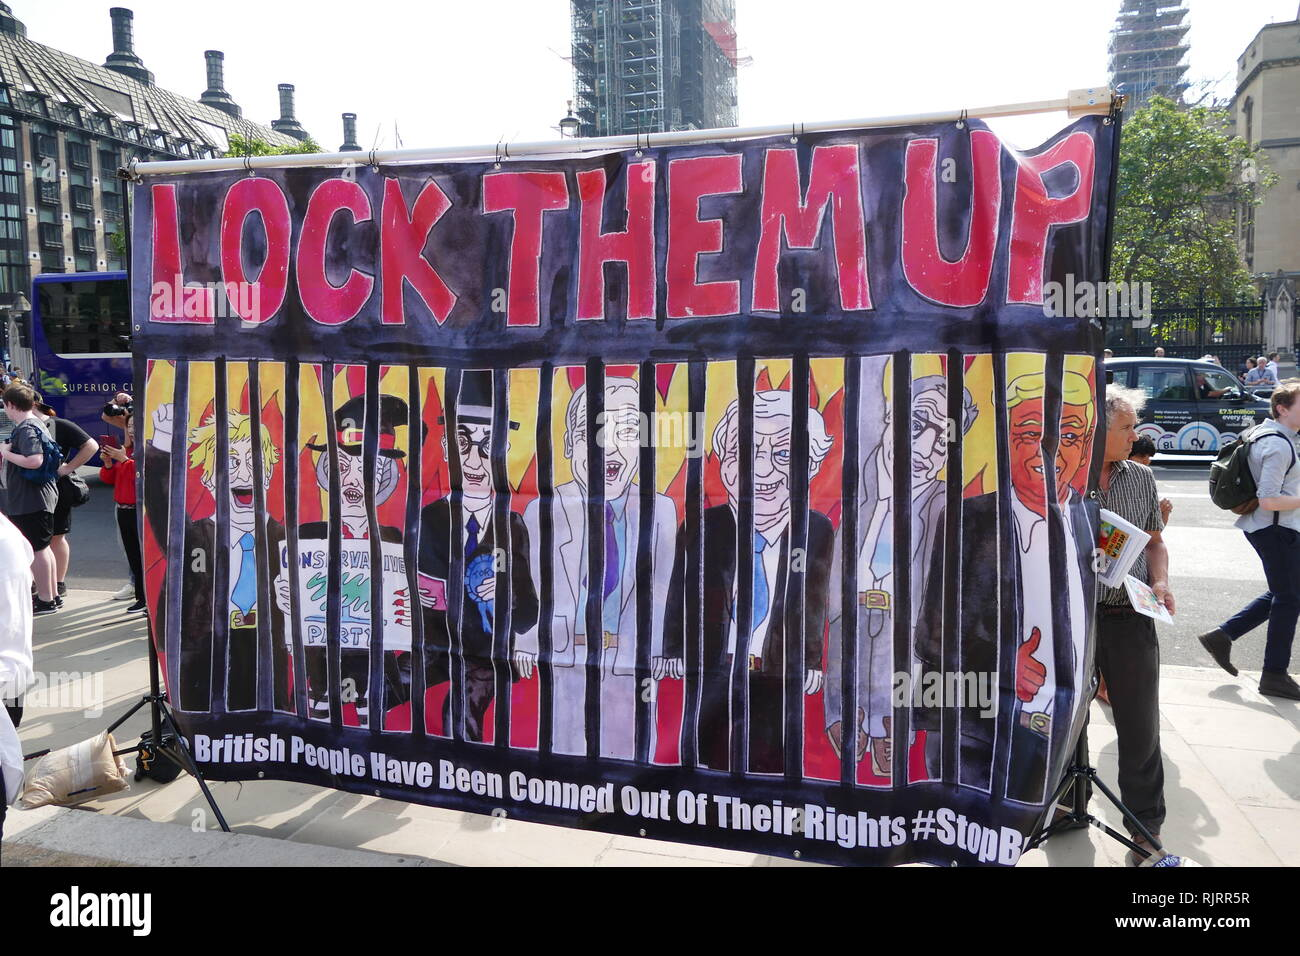 Anti-Trump; Anti-Brexit protest banner; London; England 2018. Image shows: Boris Johnson, William Rees-Mogg and David Davis (Pro-Brexit leaders) and US President Donald Trump behind bars. - Stock Image